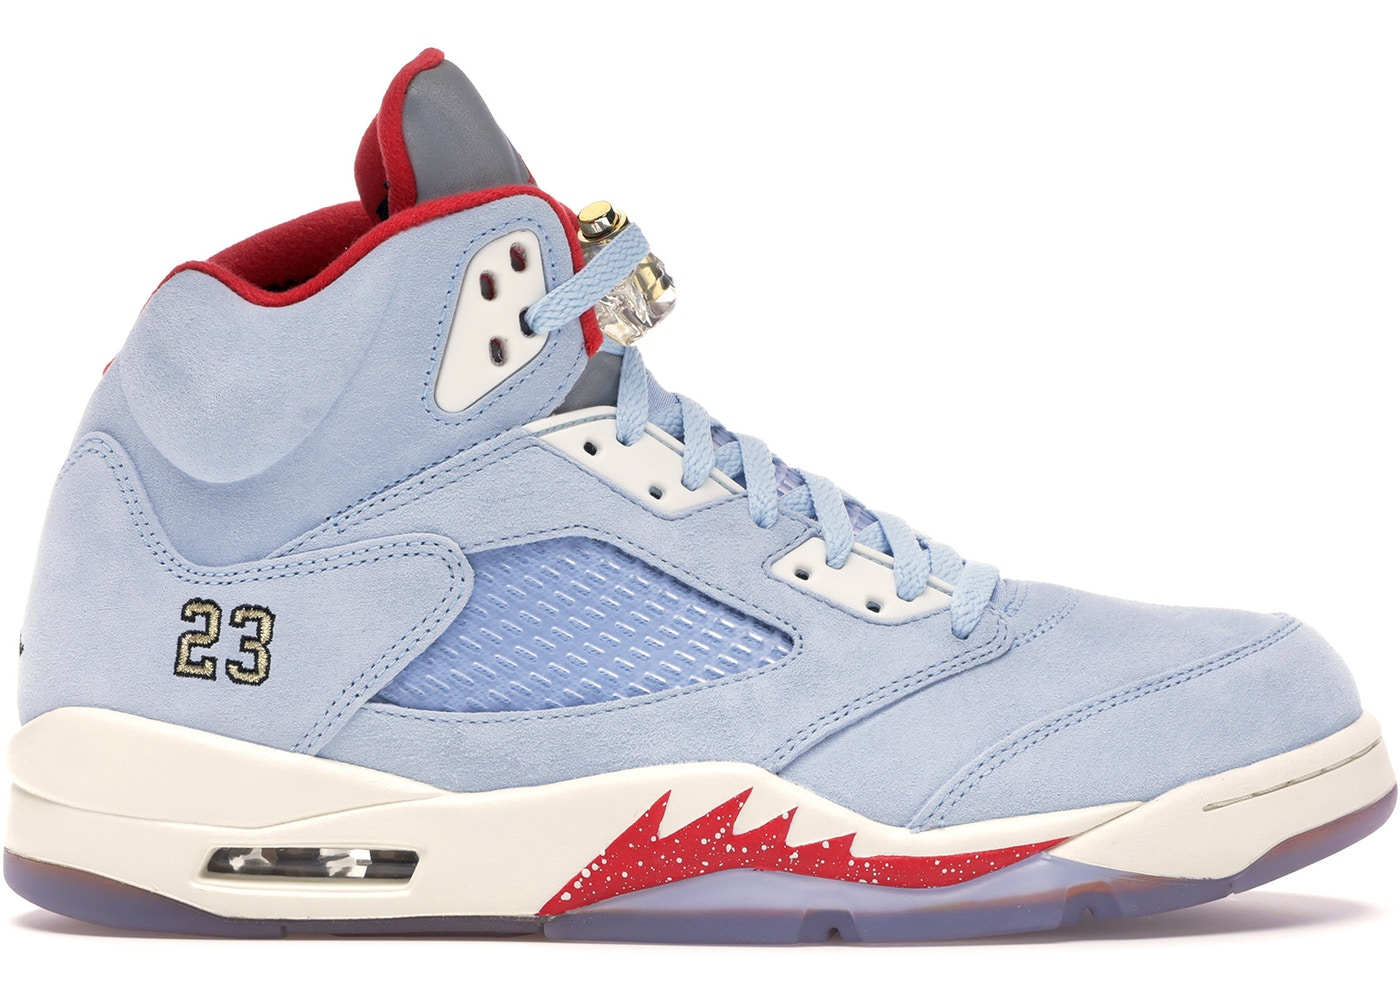 finest selection a05bb 51804 Buy Air Jordan 5 Shoes & Deadstock Sneakers